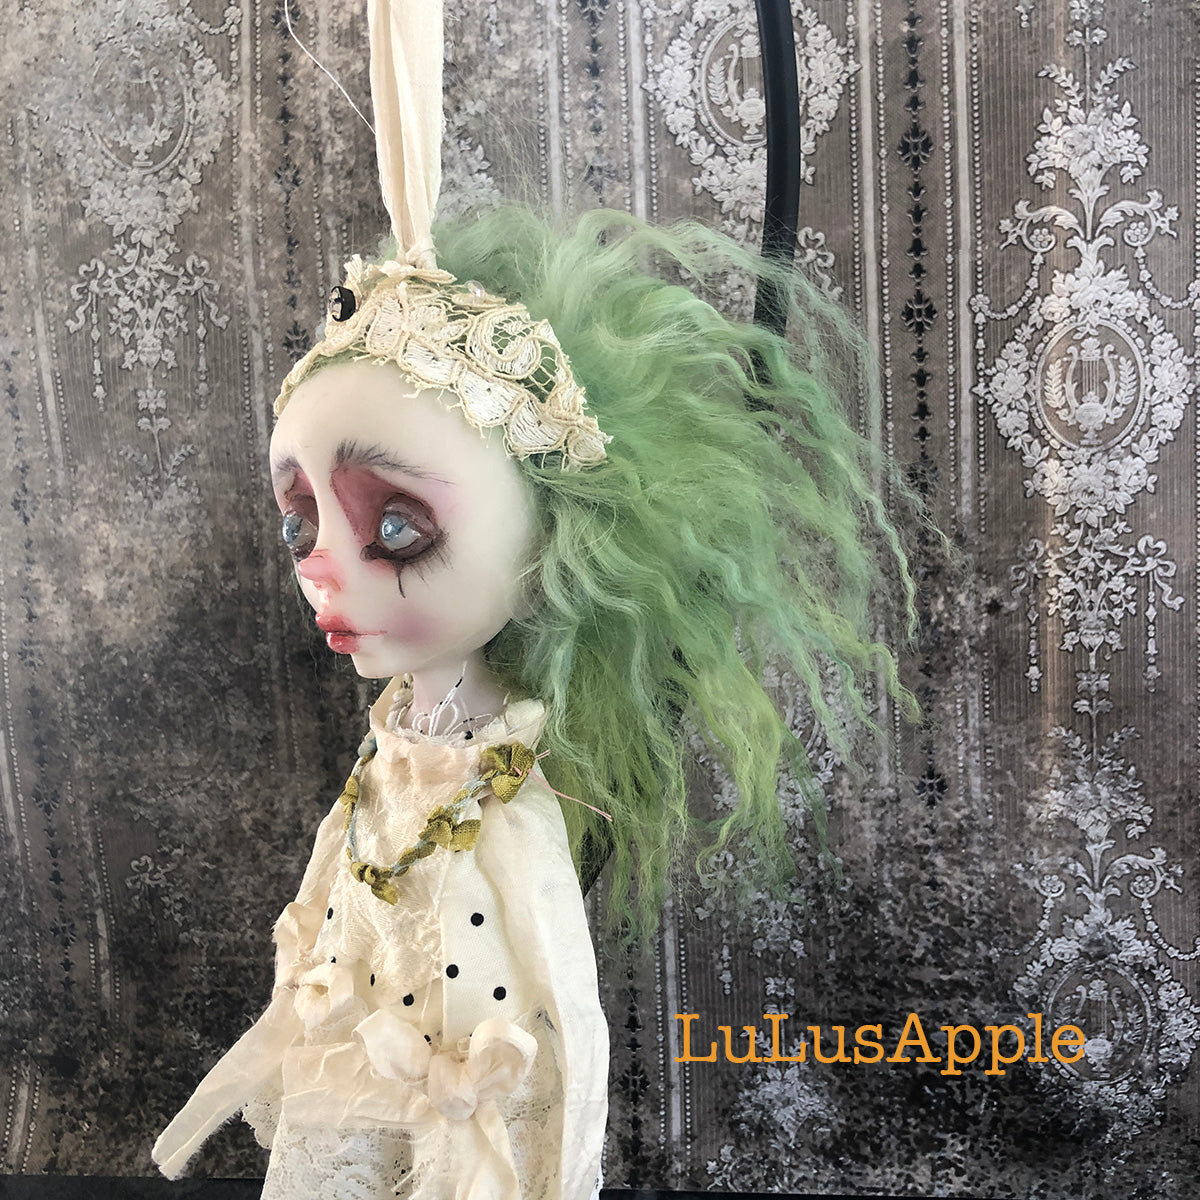 Marla the Decapitated Head Ghostly ornament OOAK LuLusApple Art Doll